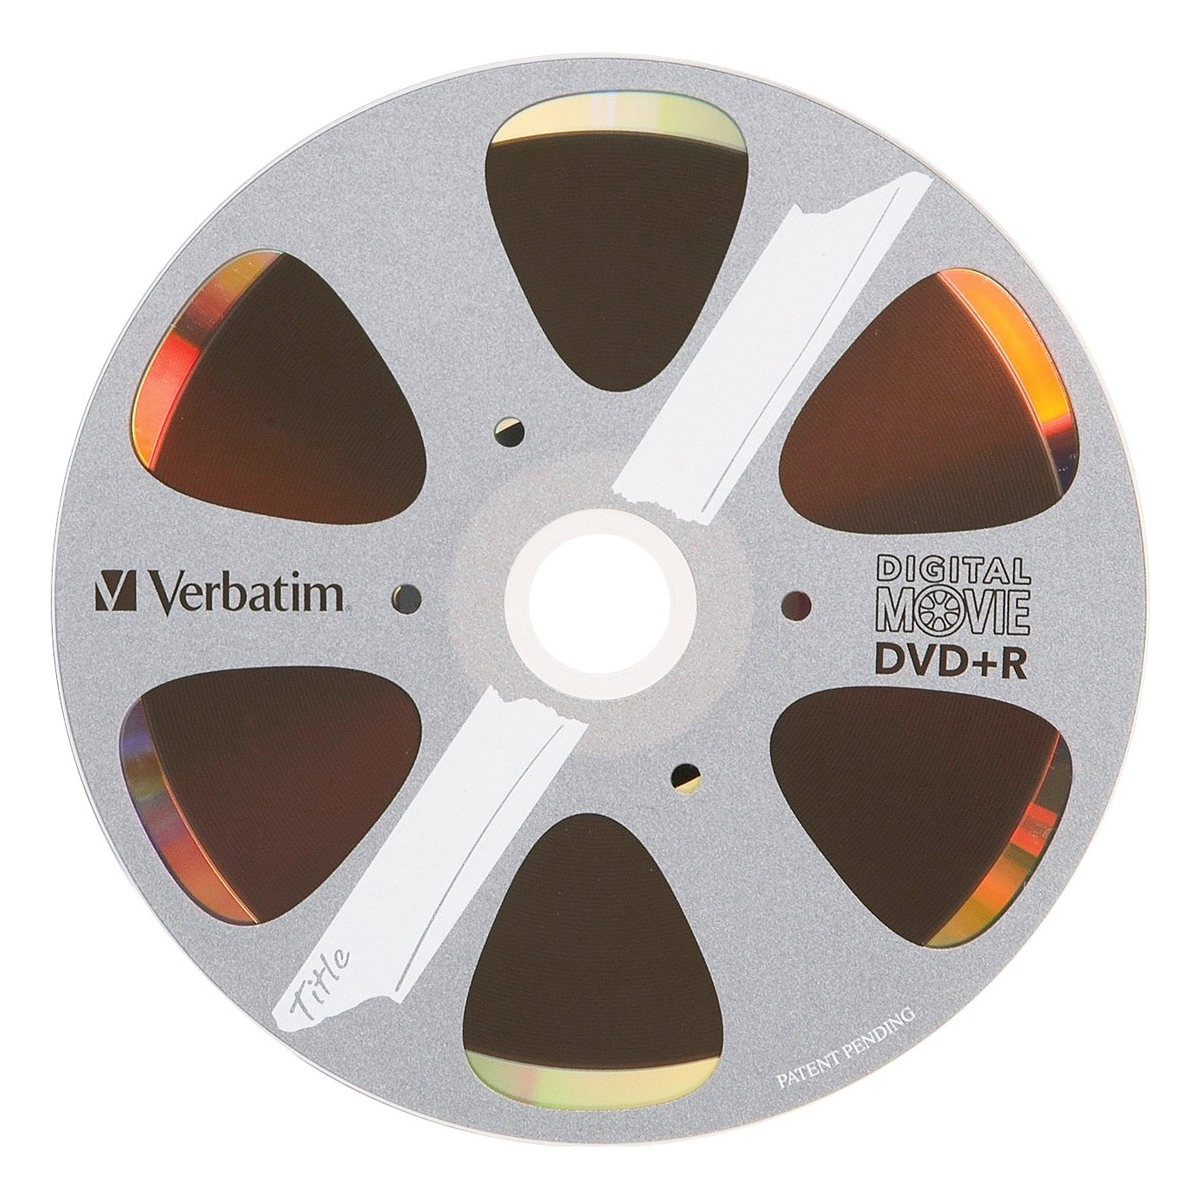 DVD+R 4.7GB 8X with DigitalMovie Surface - 10pk Box - 120mm - 2 Hour Maximum Recording Time